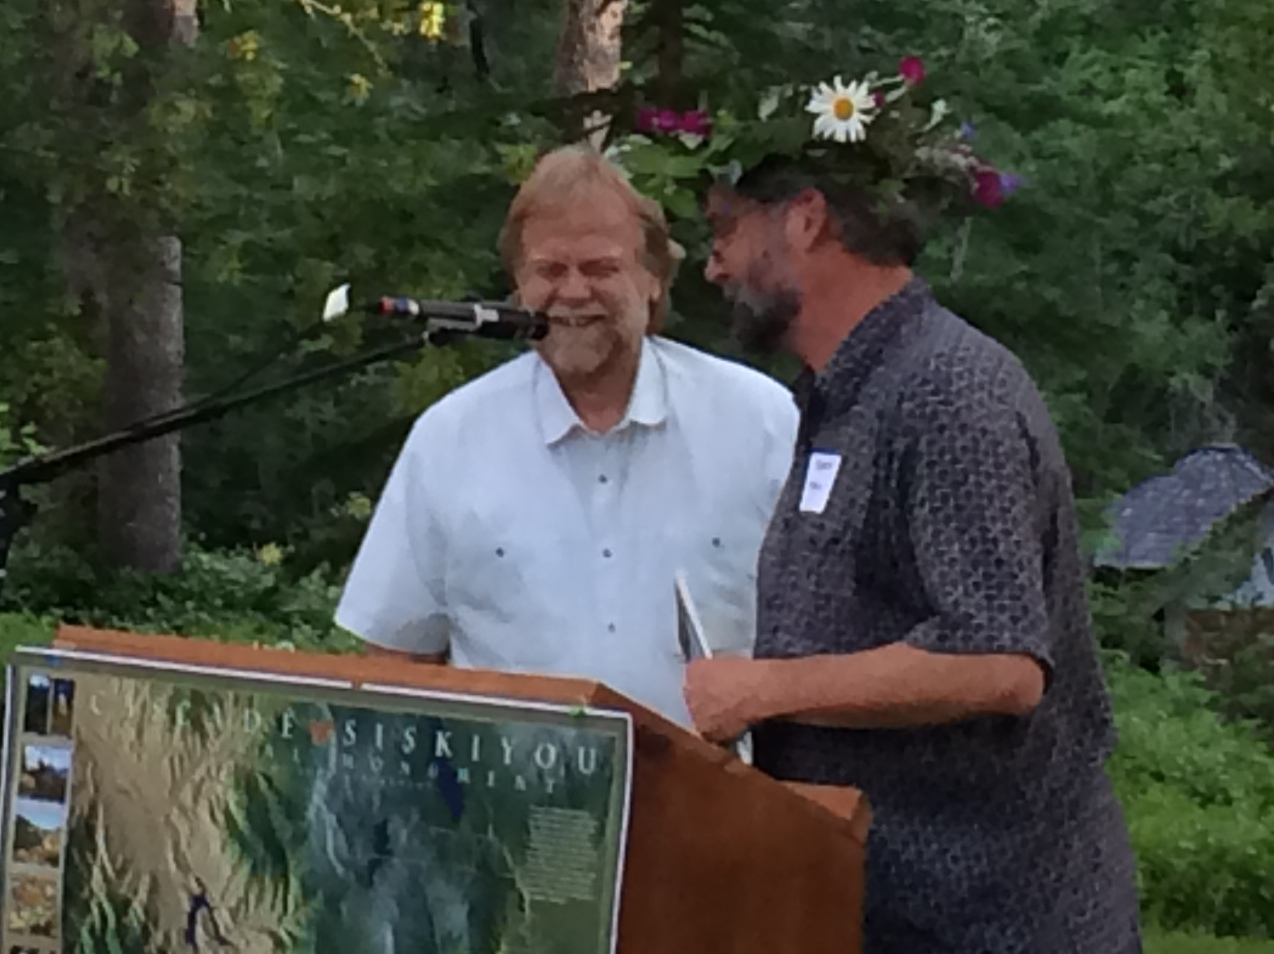 Dave Willis with Pepper Trail. Dave Willis was Awarded theTim Lillebo Wildlands Warrior Award by Oregon Wild. TPD Photo.